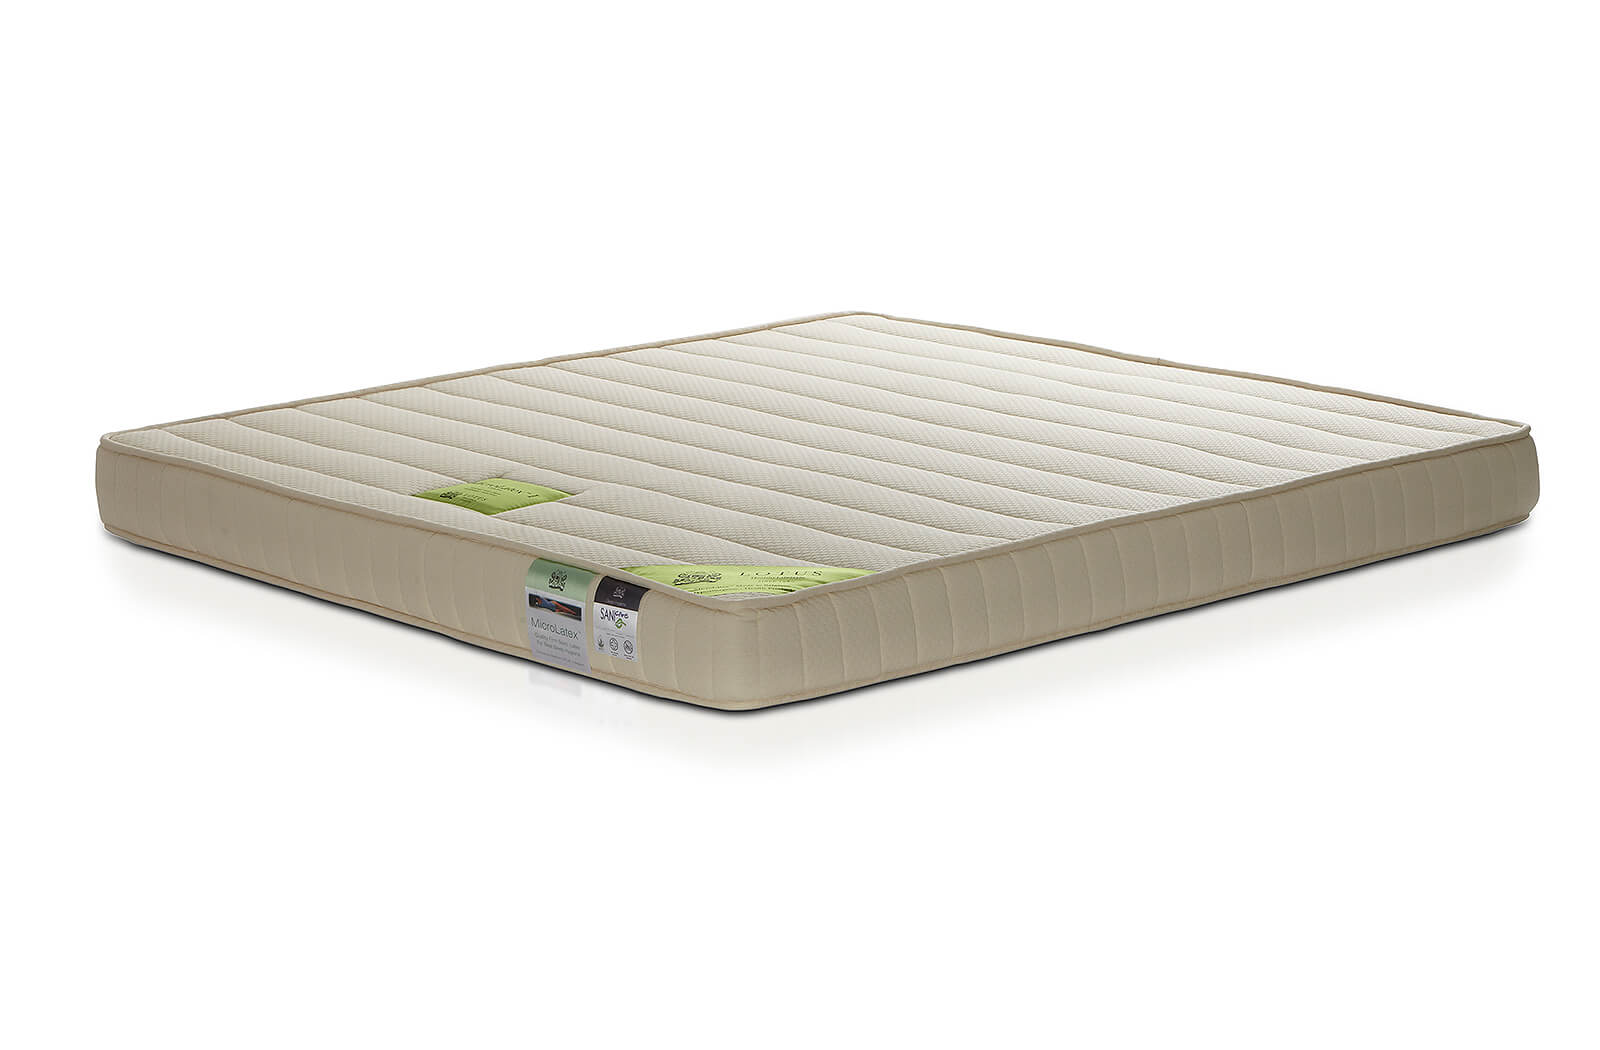 Lotus Mattress Microlatex I